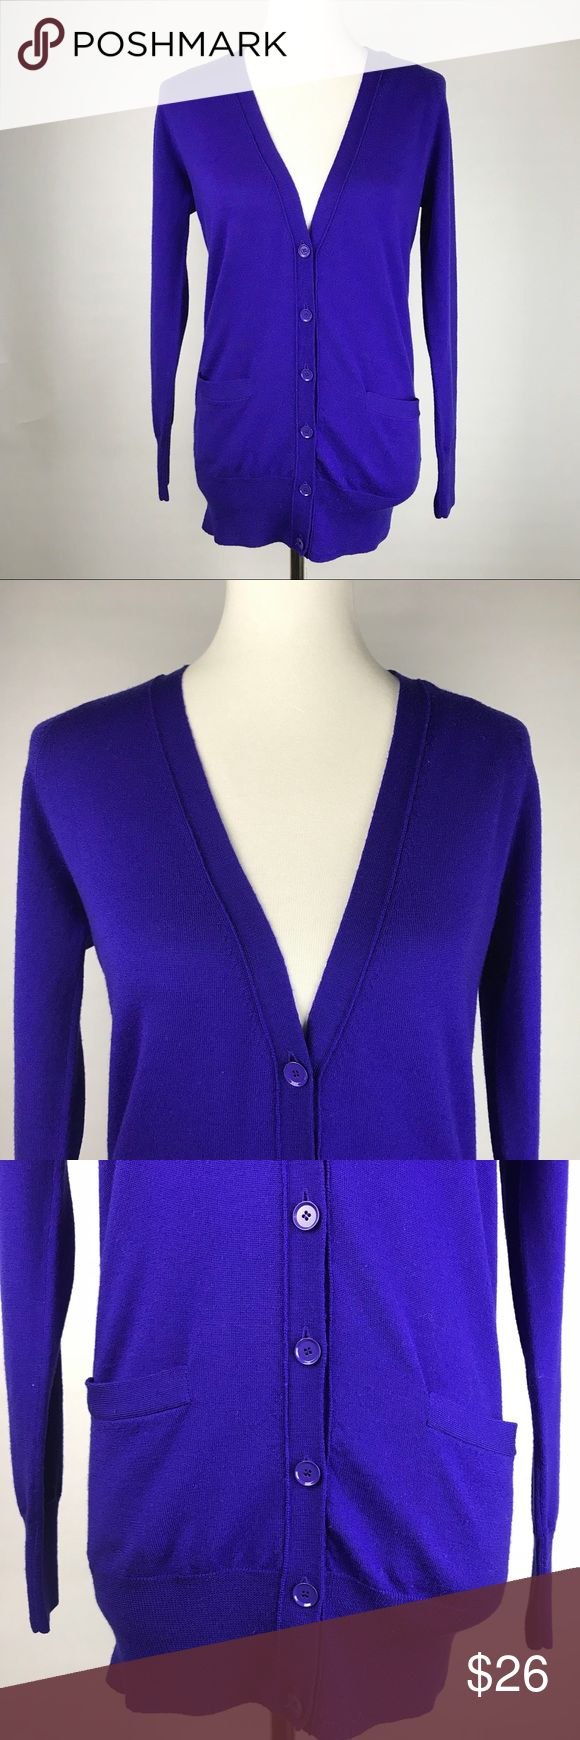 "J. CREW small blue merino wool cardigan sweater! Gorgeous royal blue cardigan sweater from J. Crew! Women's small. Long sleeve, v neck, buttons half way down. Soft 100% merino wool. Great springy color! Measurements taken laid flat: Bust 18"" across Length 27"" J. Crew Sweaters Cardigans"